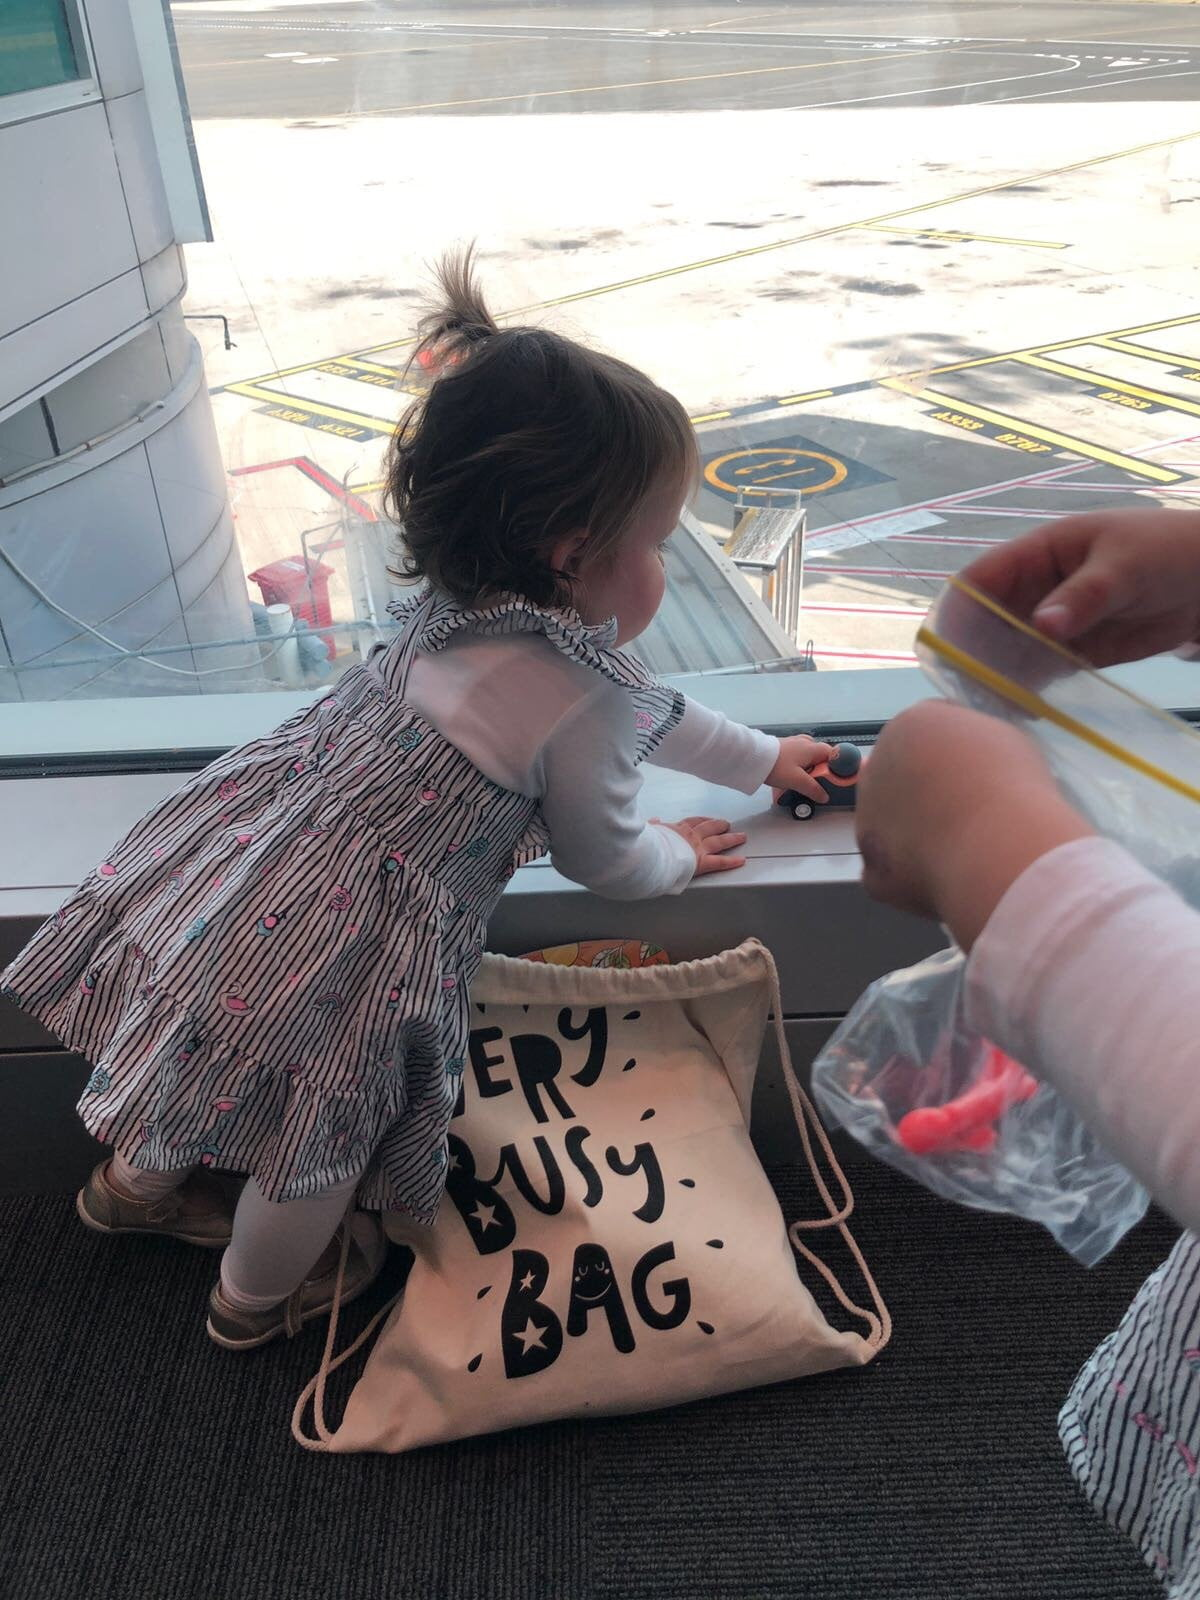 Very Busy Bag - 1-2 Years Old